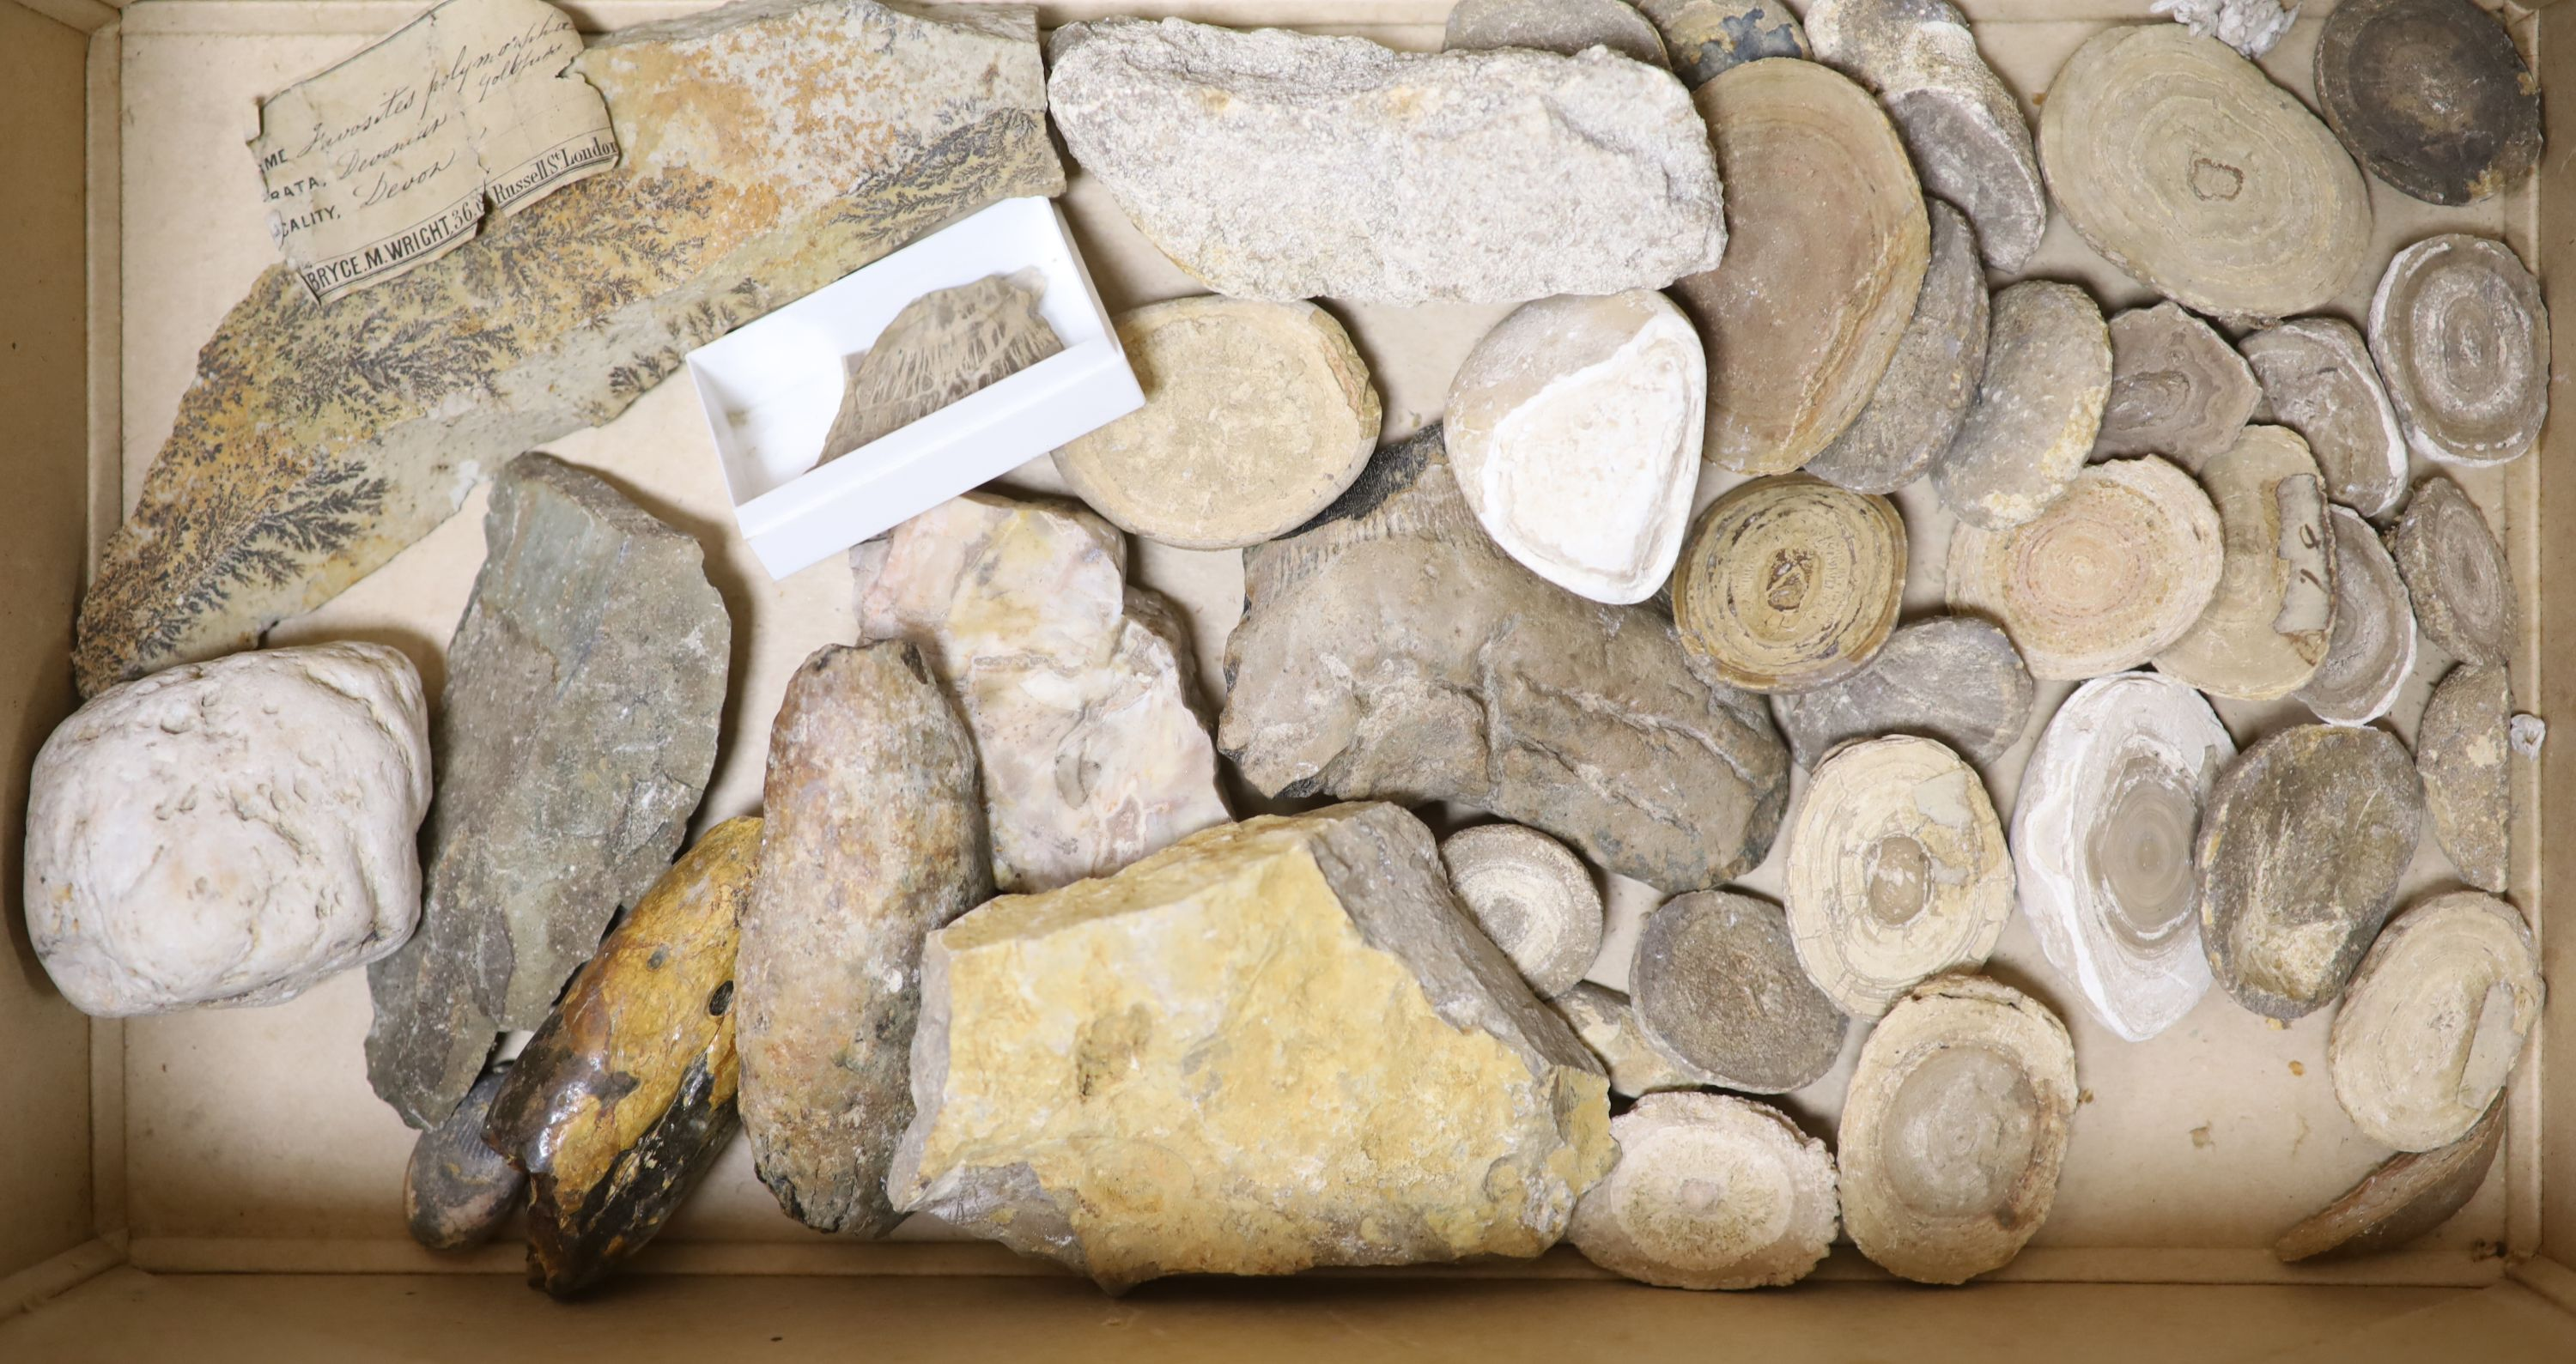 A large collection of fossil marble and fossil specimens, collected before 1970, largest 19.5cm, - Image 3 of 3